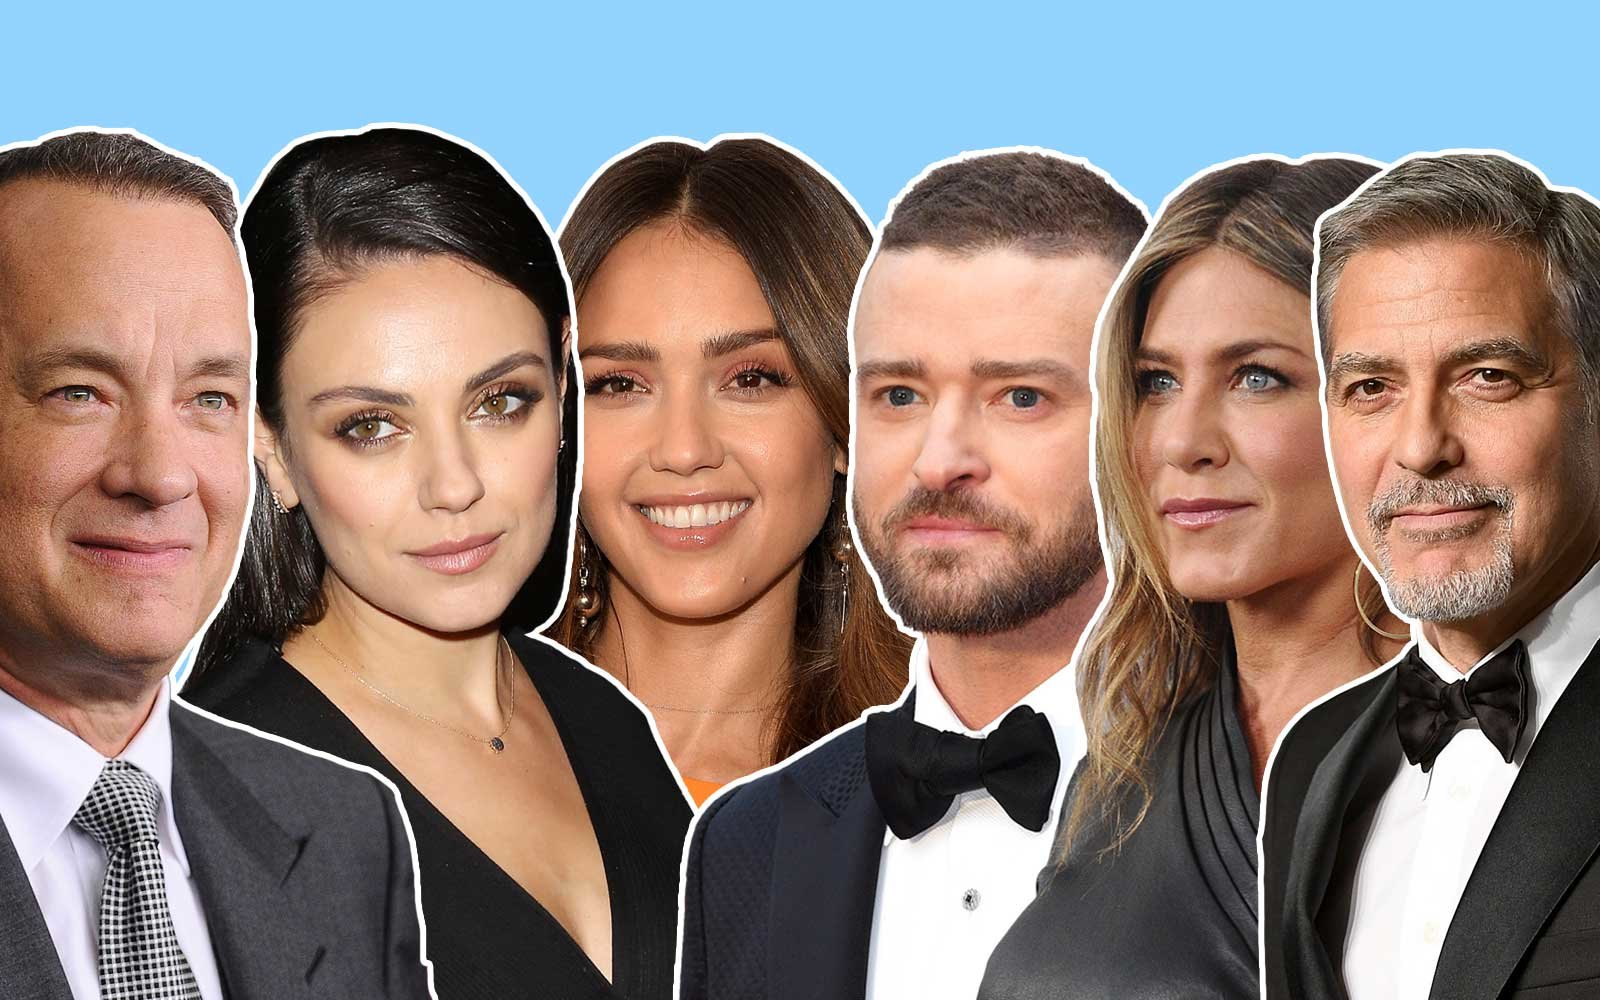 Image result for celebrities group pic